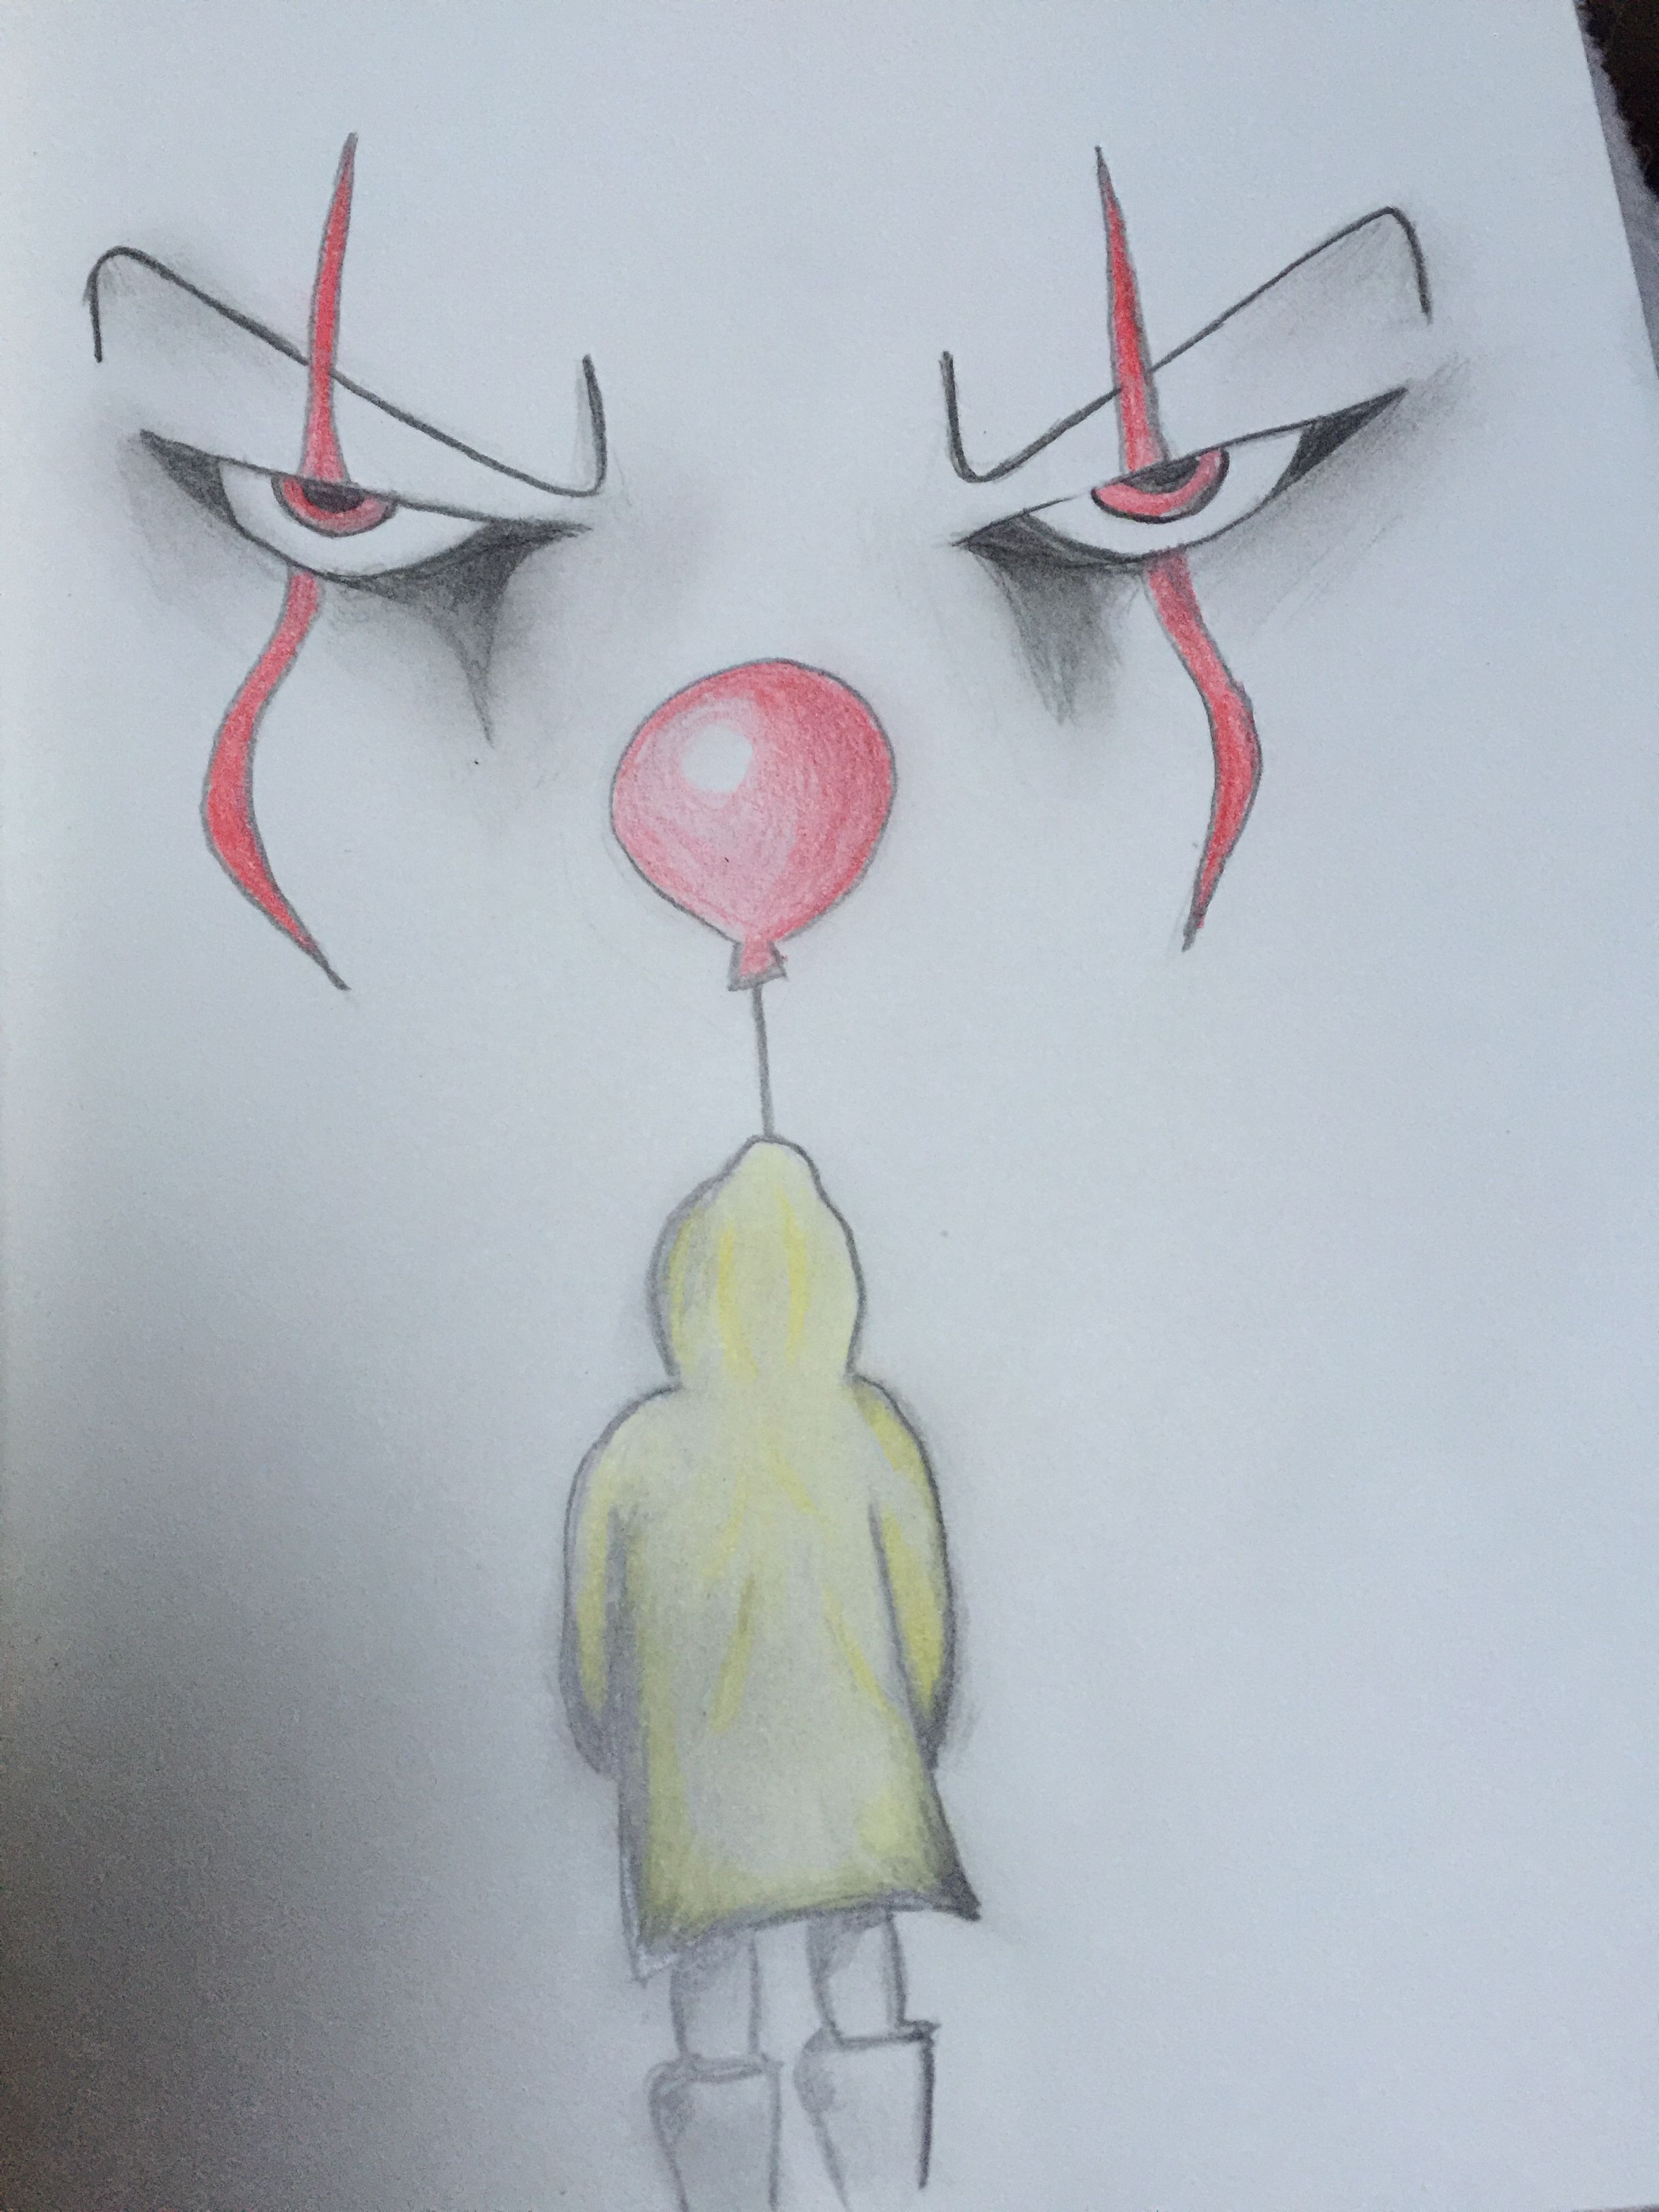 Pin by street soldia on Me | Scary drawings, Drawings, Art ...